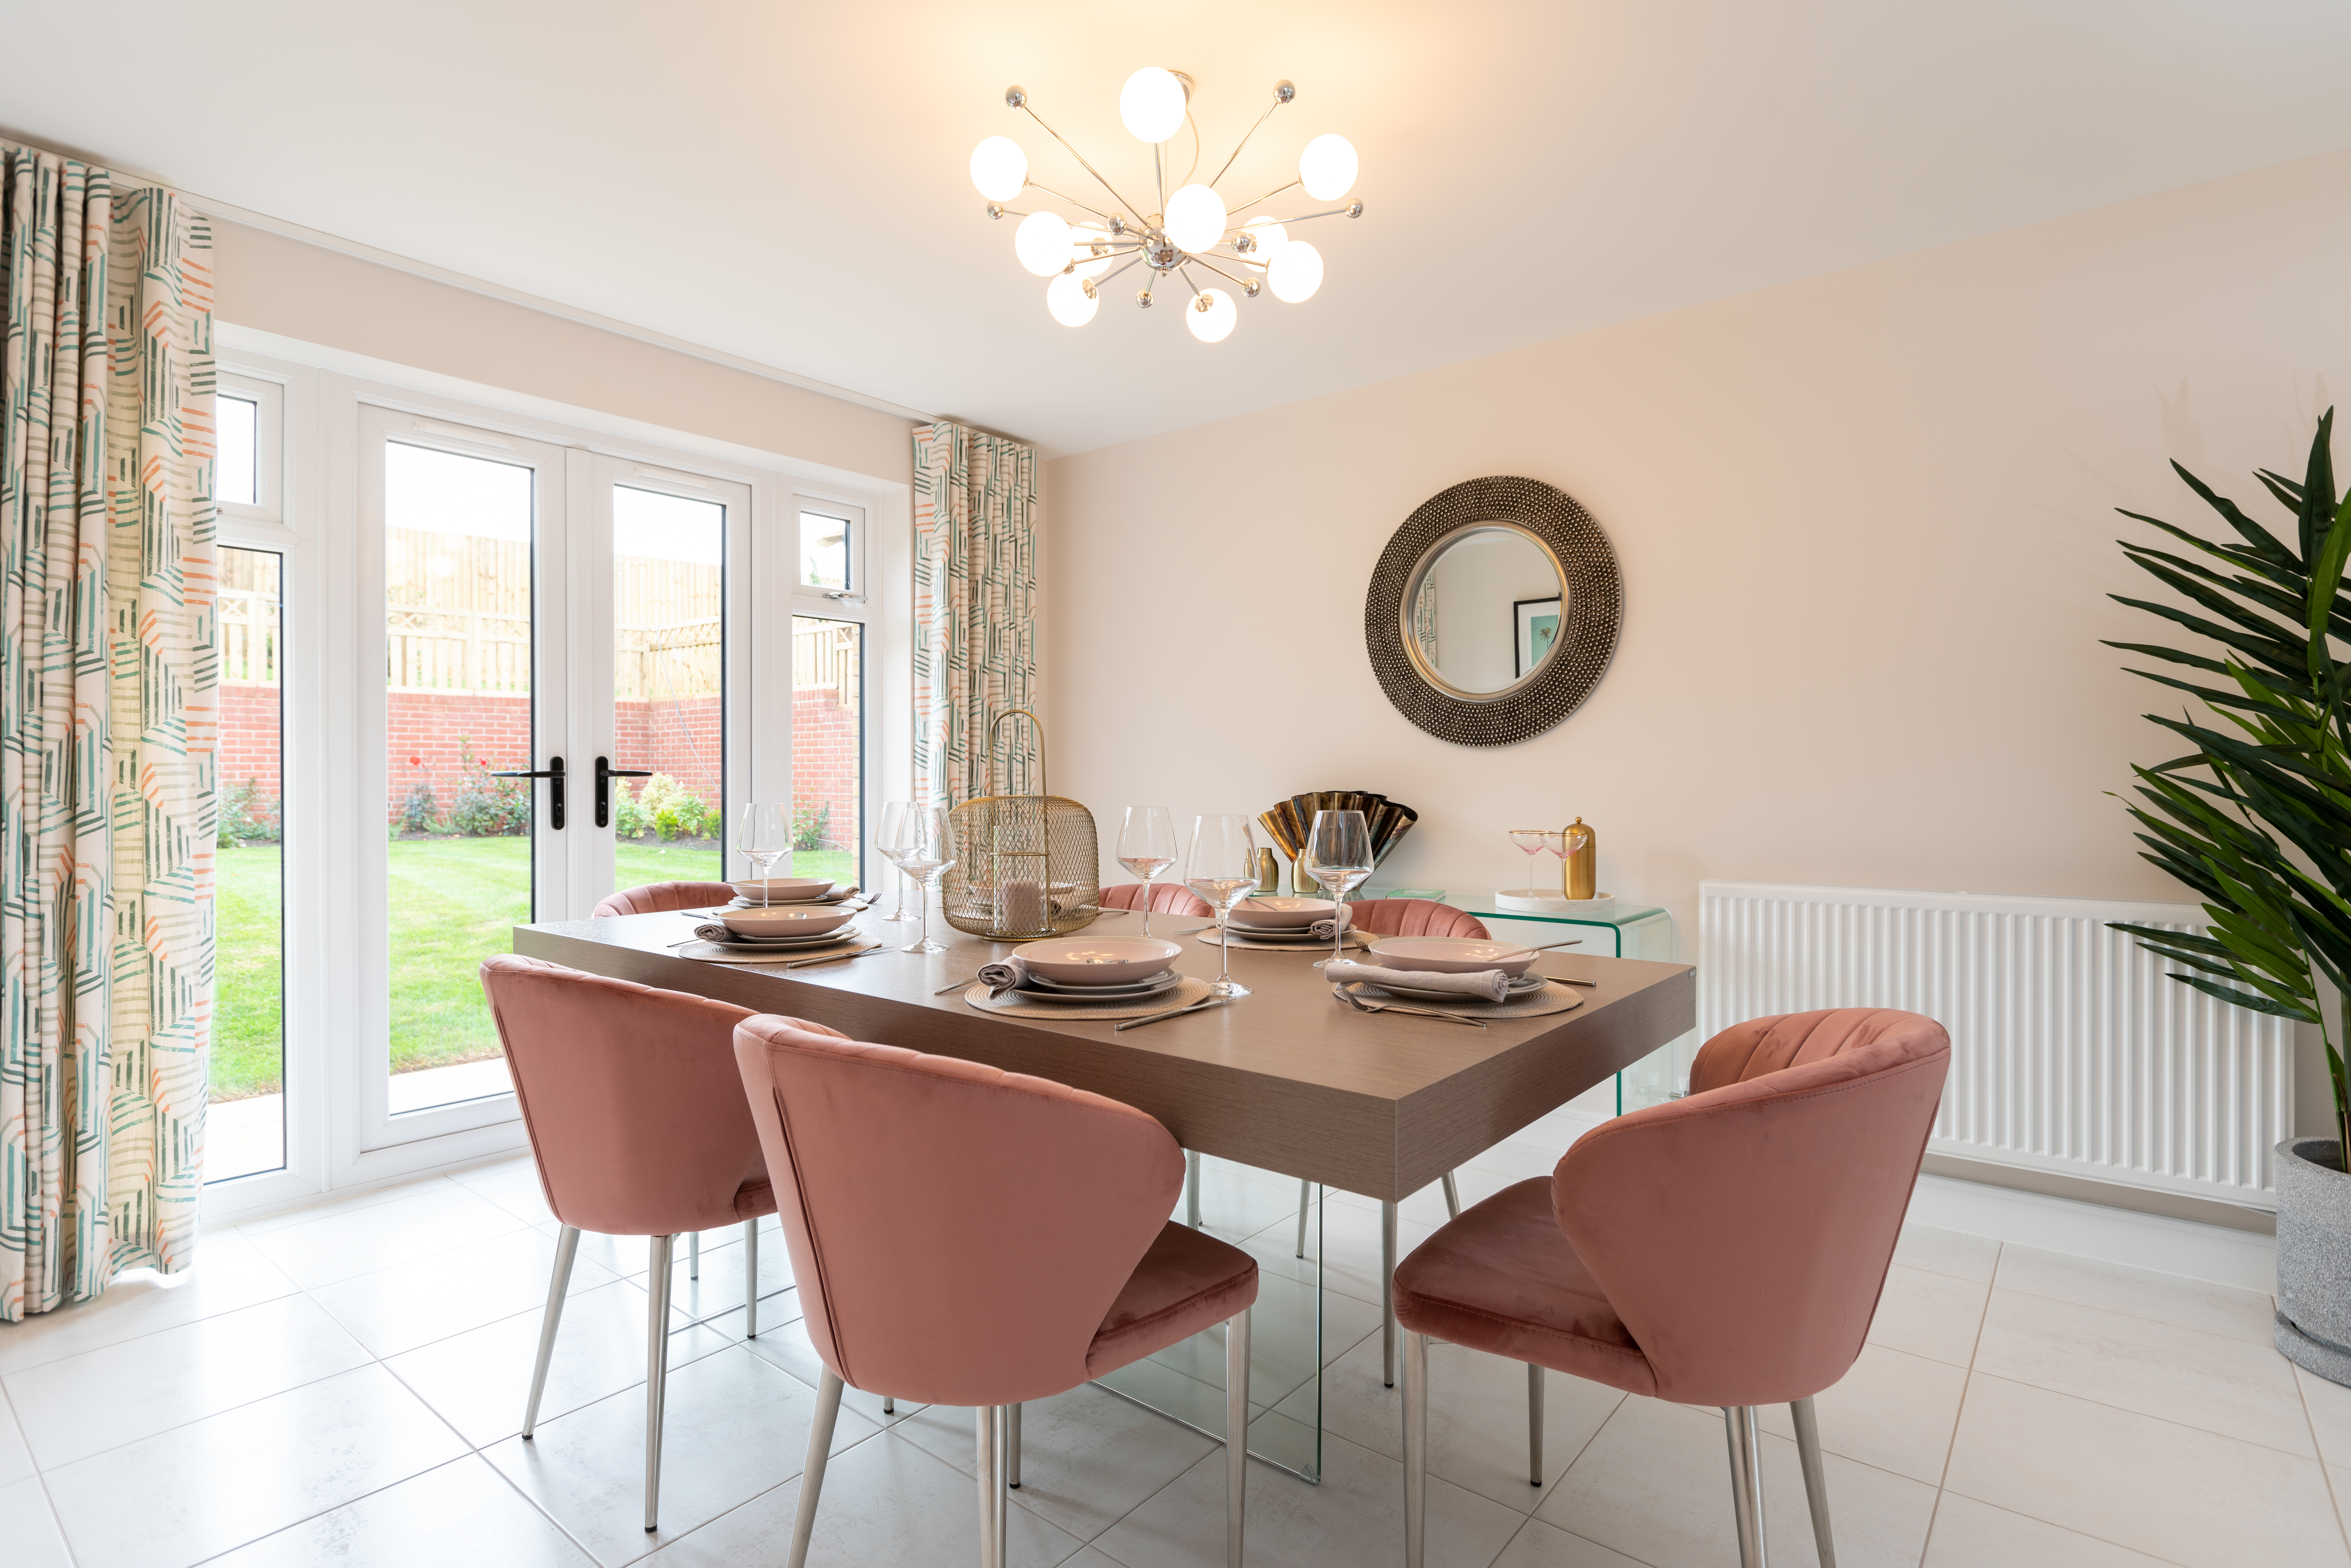 TW EX_Mayfield Gardens_Marford 4 Bed_Dining 2